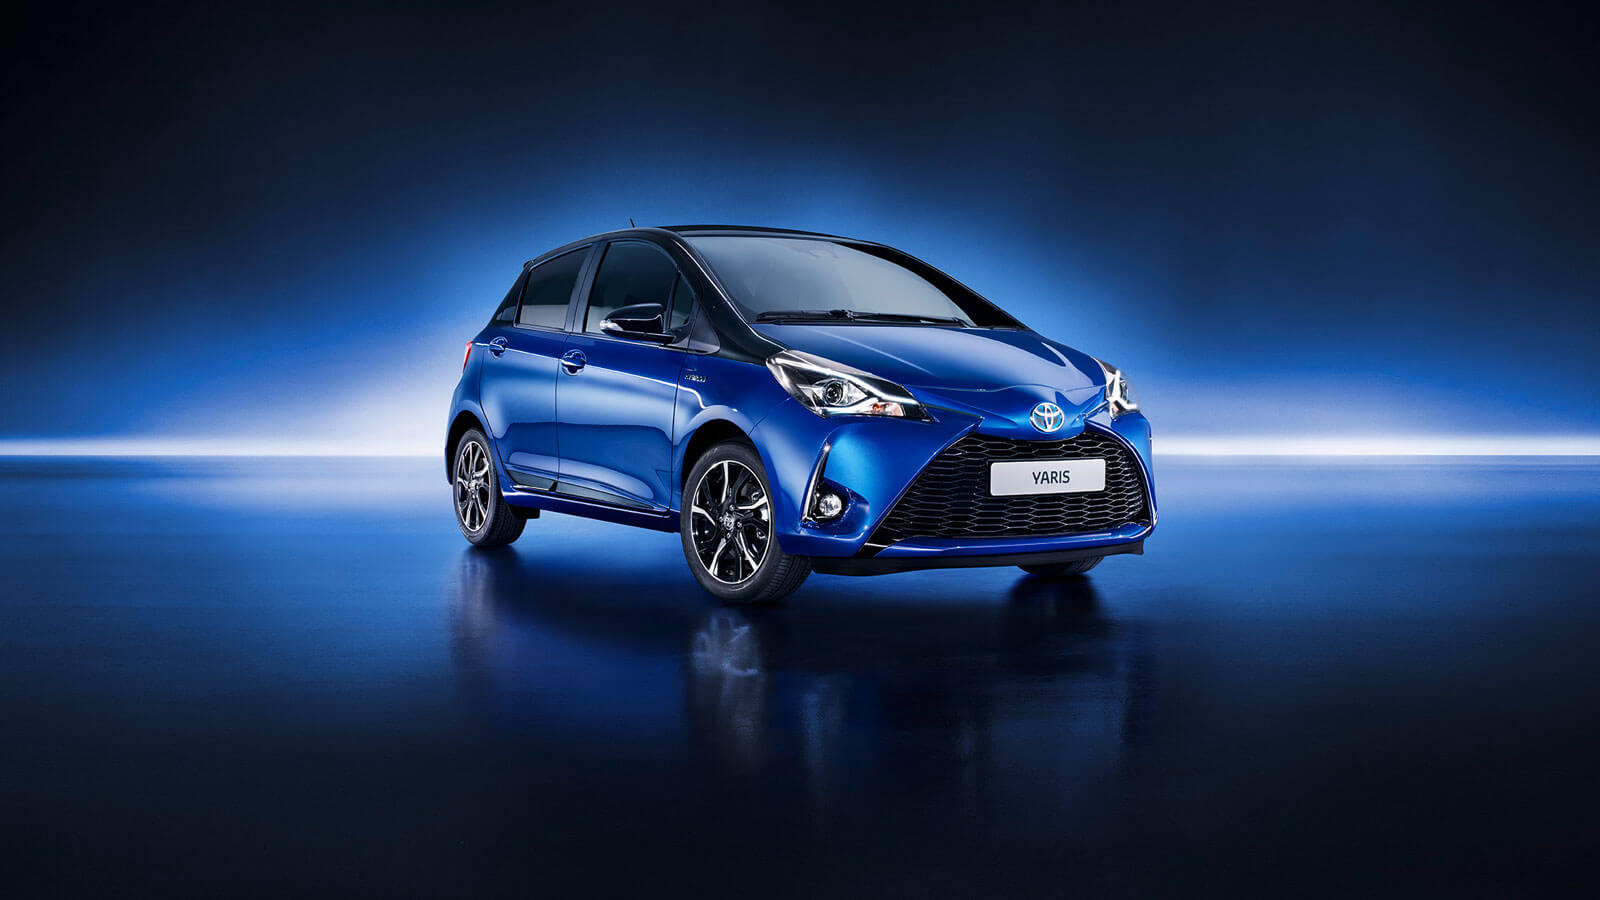 New Yaris models & features